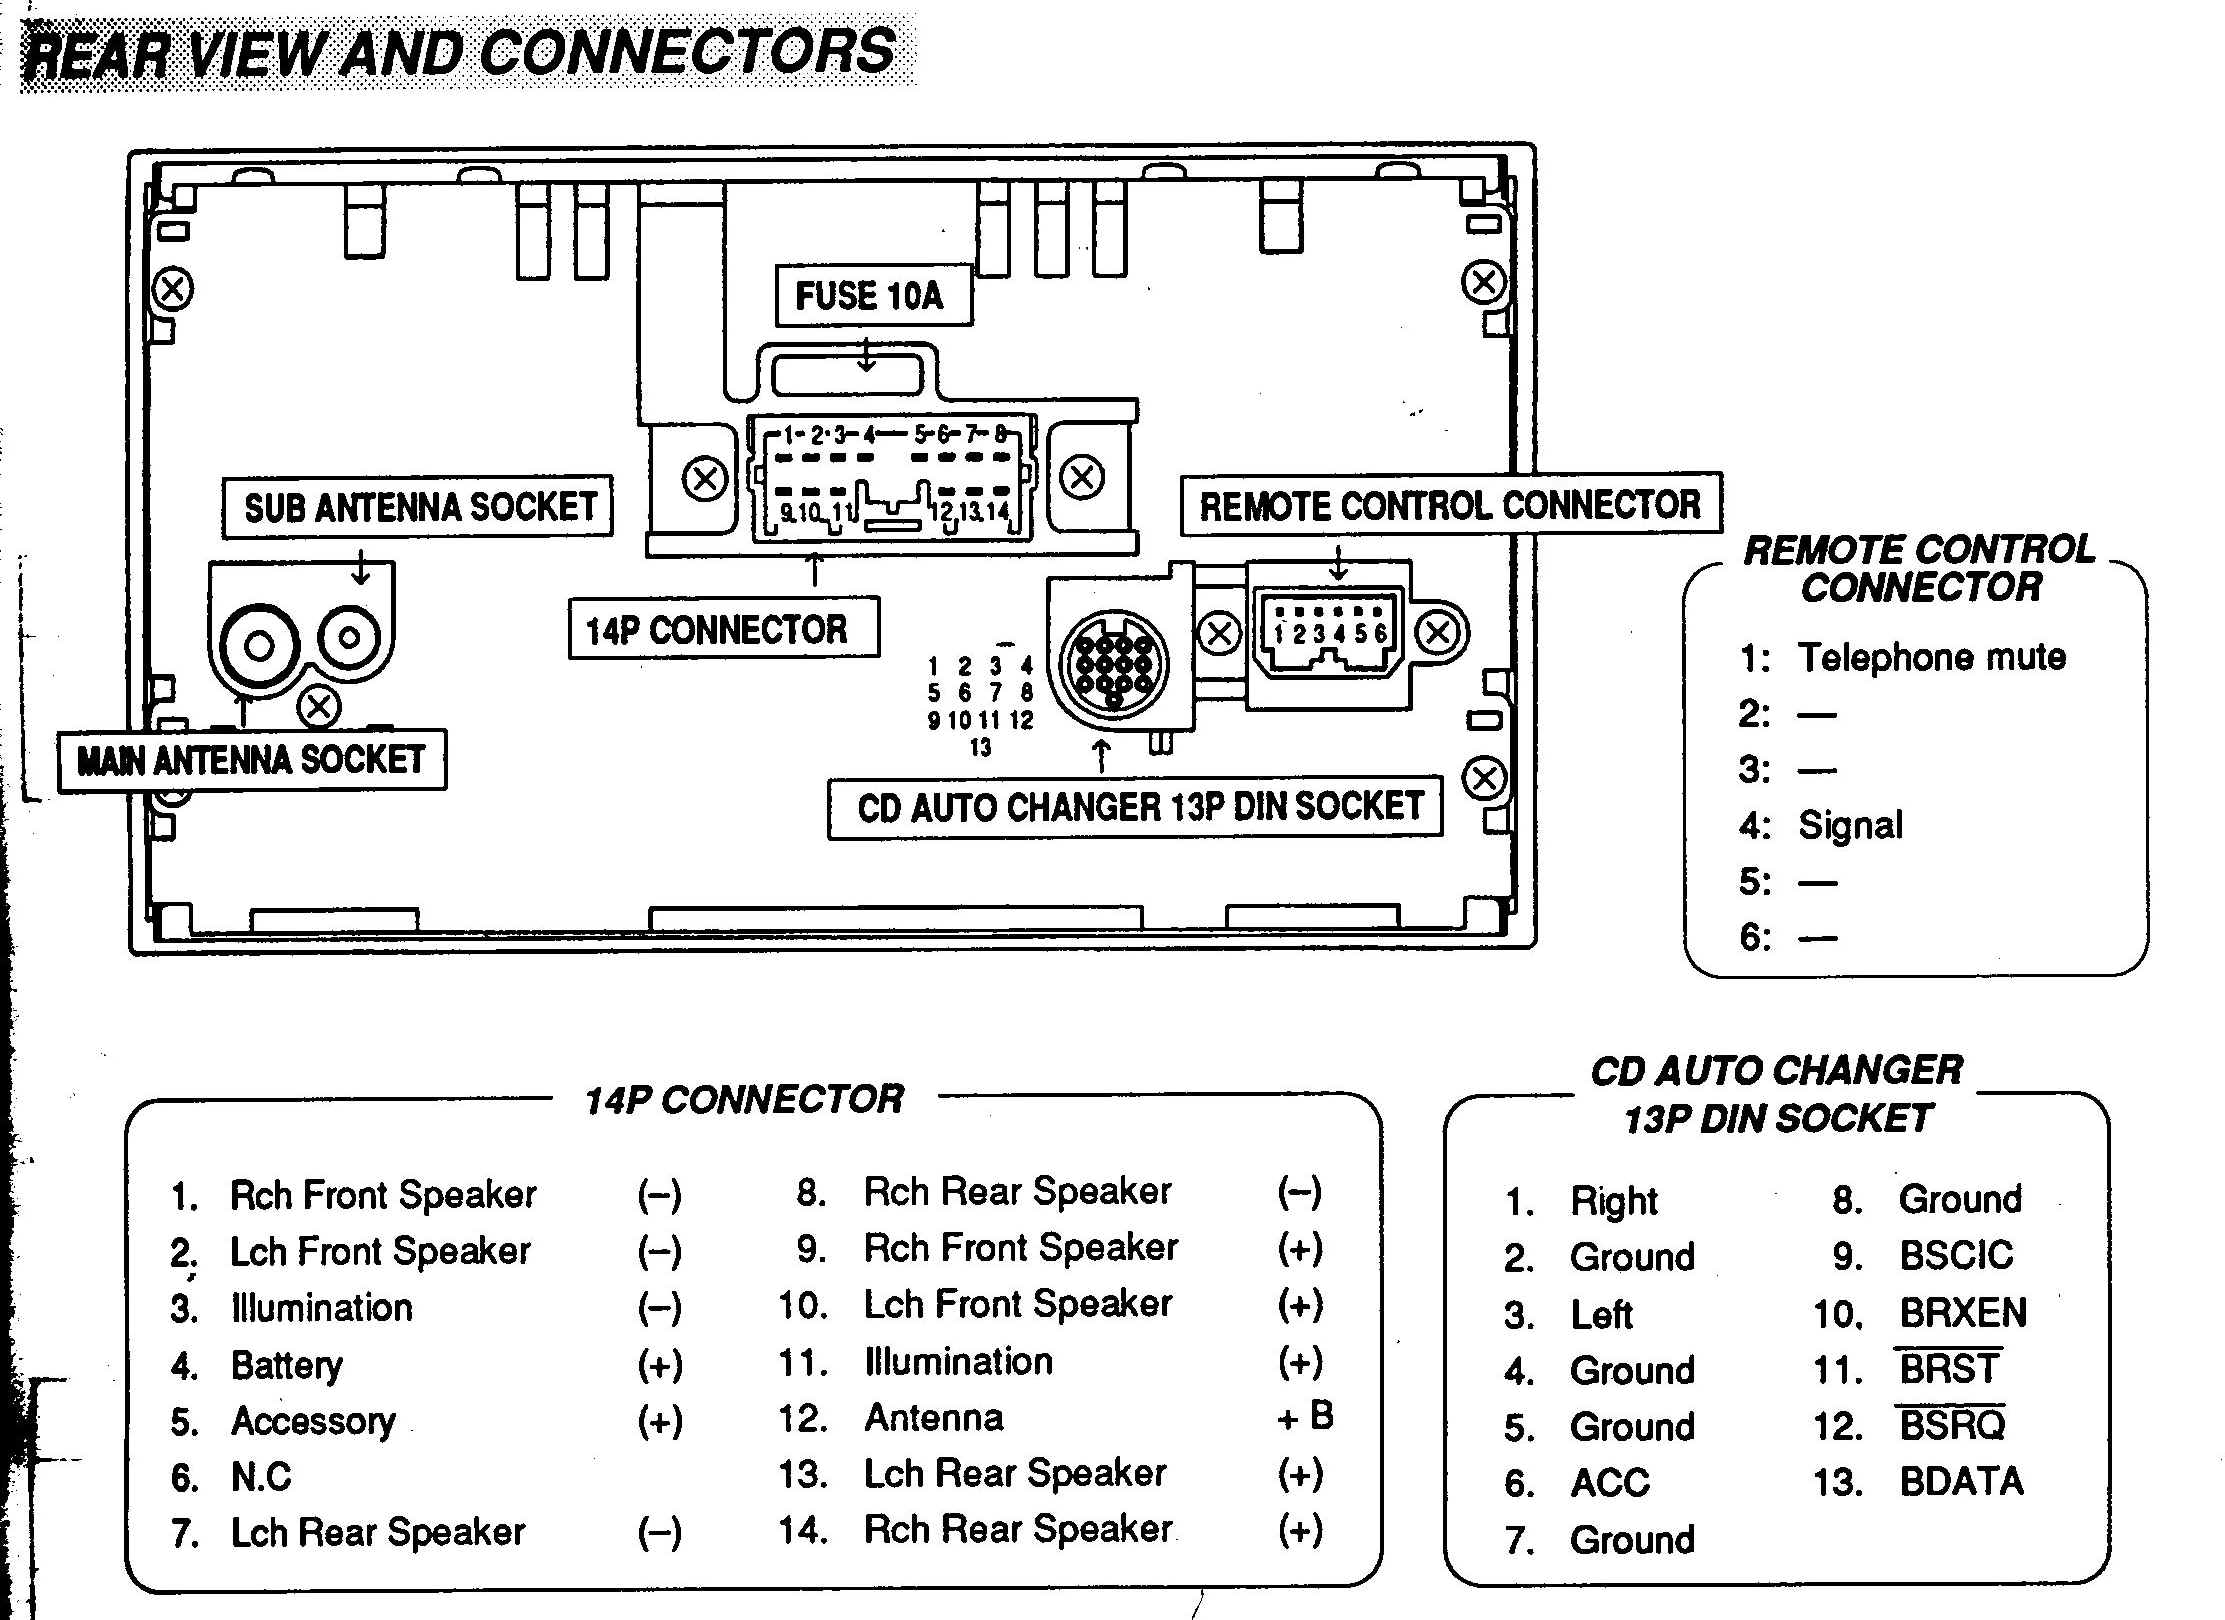 WireHarnessMit121003 car radio wire diagram car wiring diagrams instruction eg civic radio wiring diagram at reclaimingppi.co